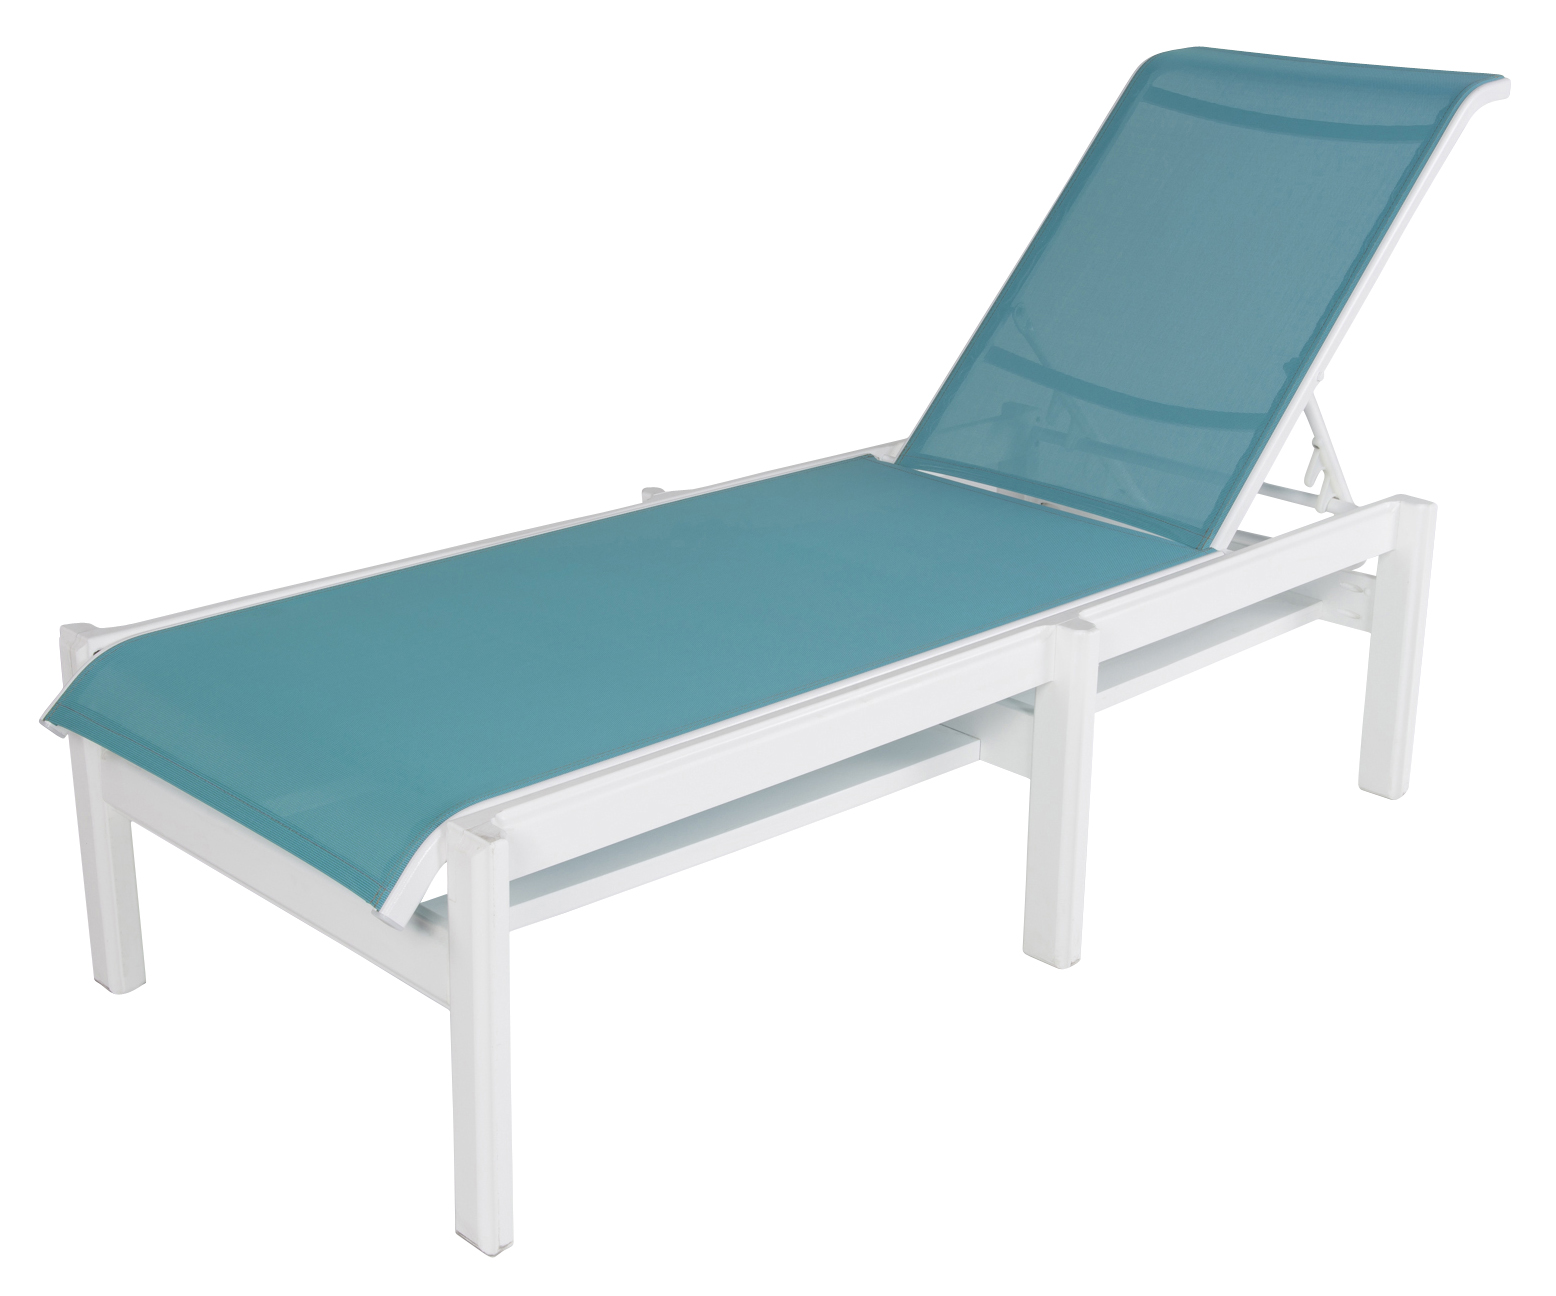 SLING CHAISE WITH NO ARM W6810 GRADE B $389.00 GRADE C $399.00 GRADE D $409.00 GRADE E $419.00